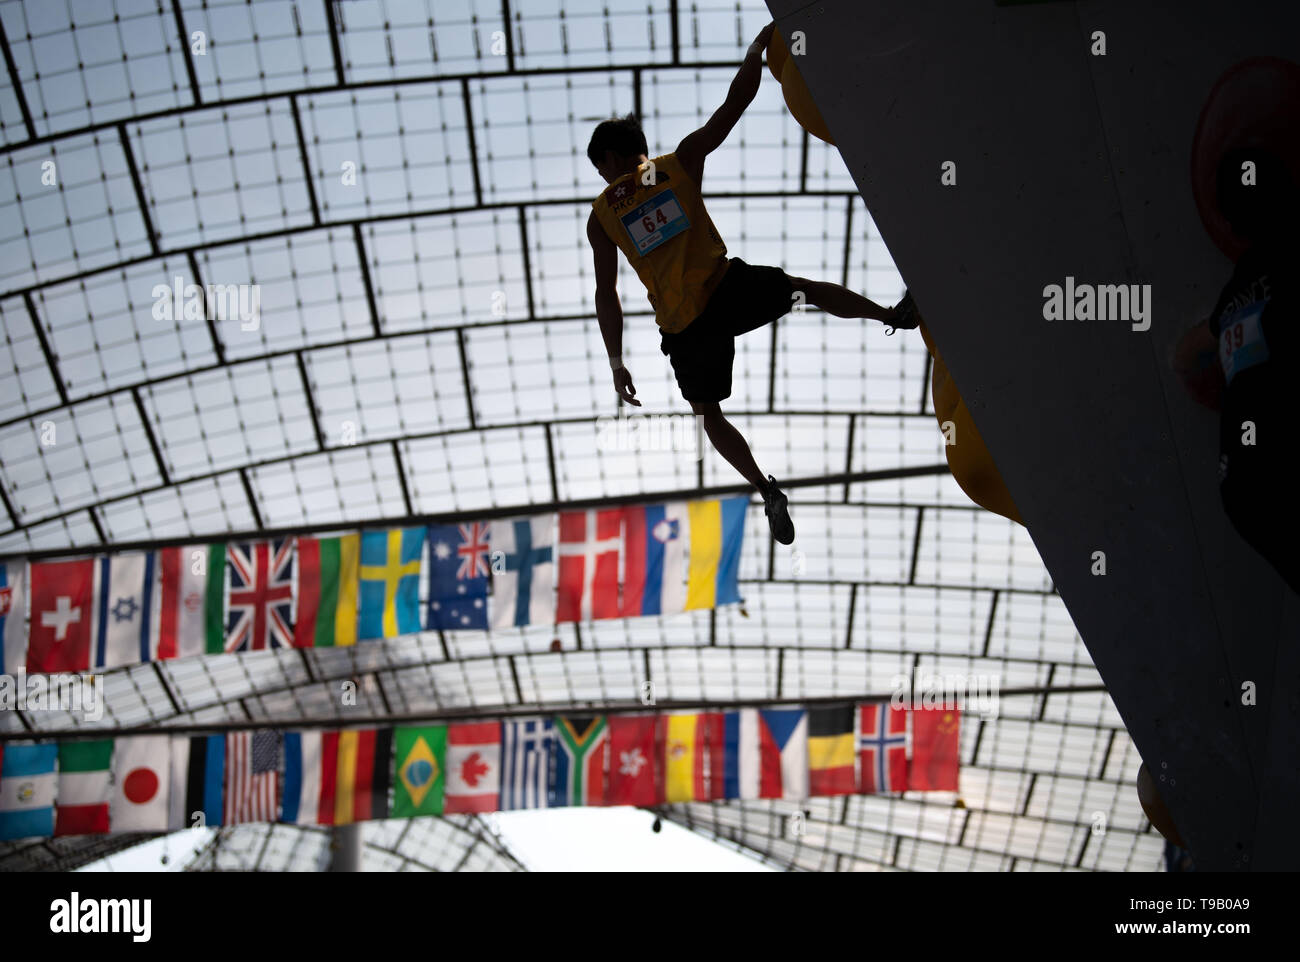 18 May 2019, Bavaria, Munich: Sports climbing: World Cup in bouldering, qualification phase men, Olympic Stadium Munich: Cheuk-hei Ho, climber team Hong Kong, lets himself fall from the top position of the boulder wall. Photo: Lino Mirgeler/dpa - Stock Image